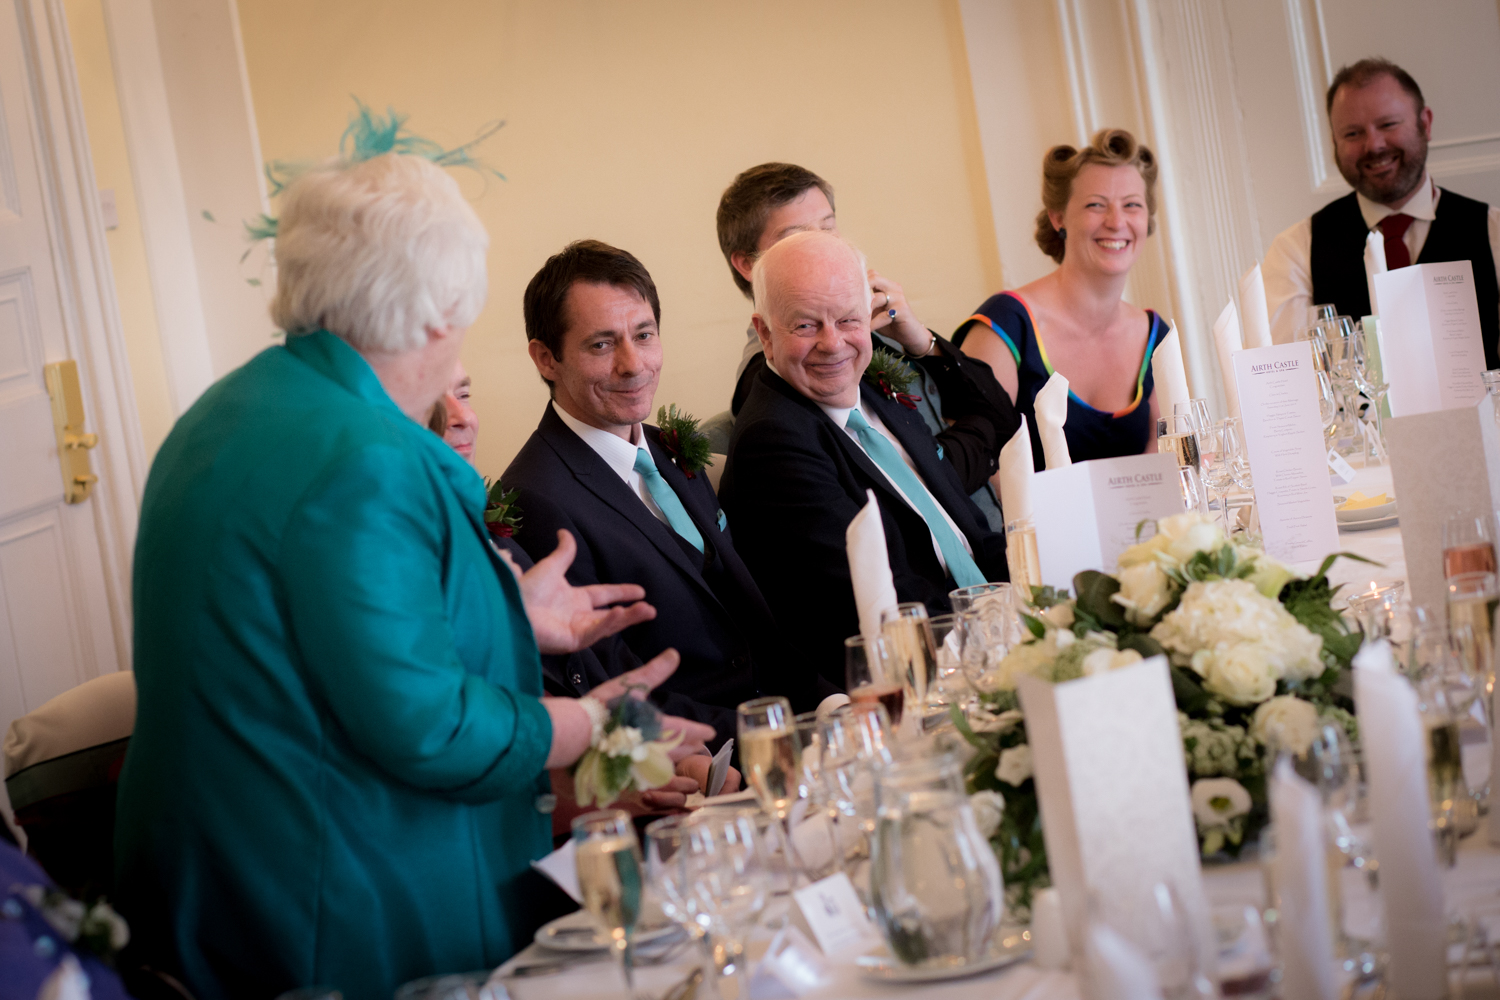 Clare and Charles wedding day blog-76.jpg